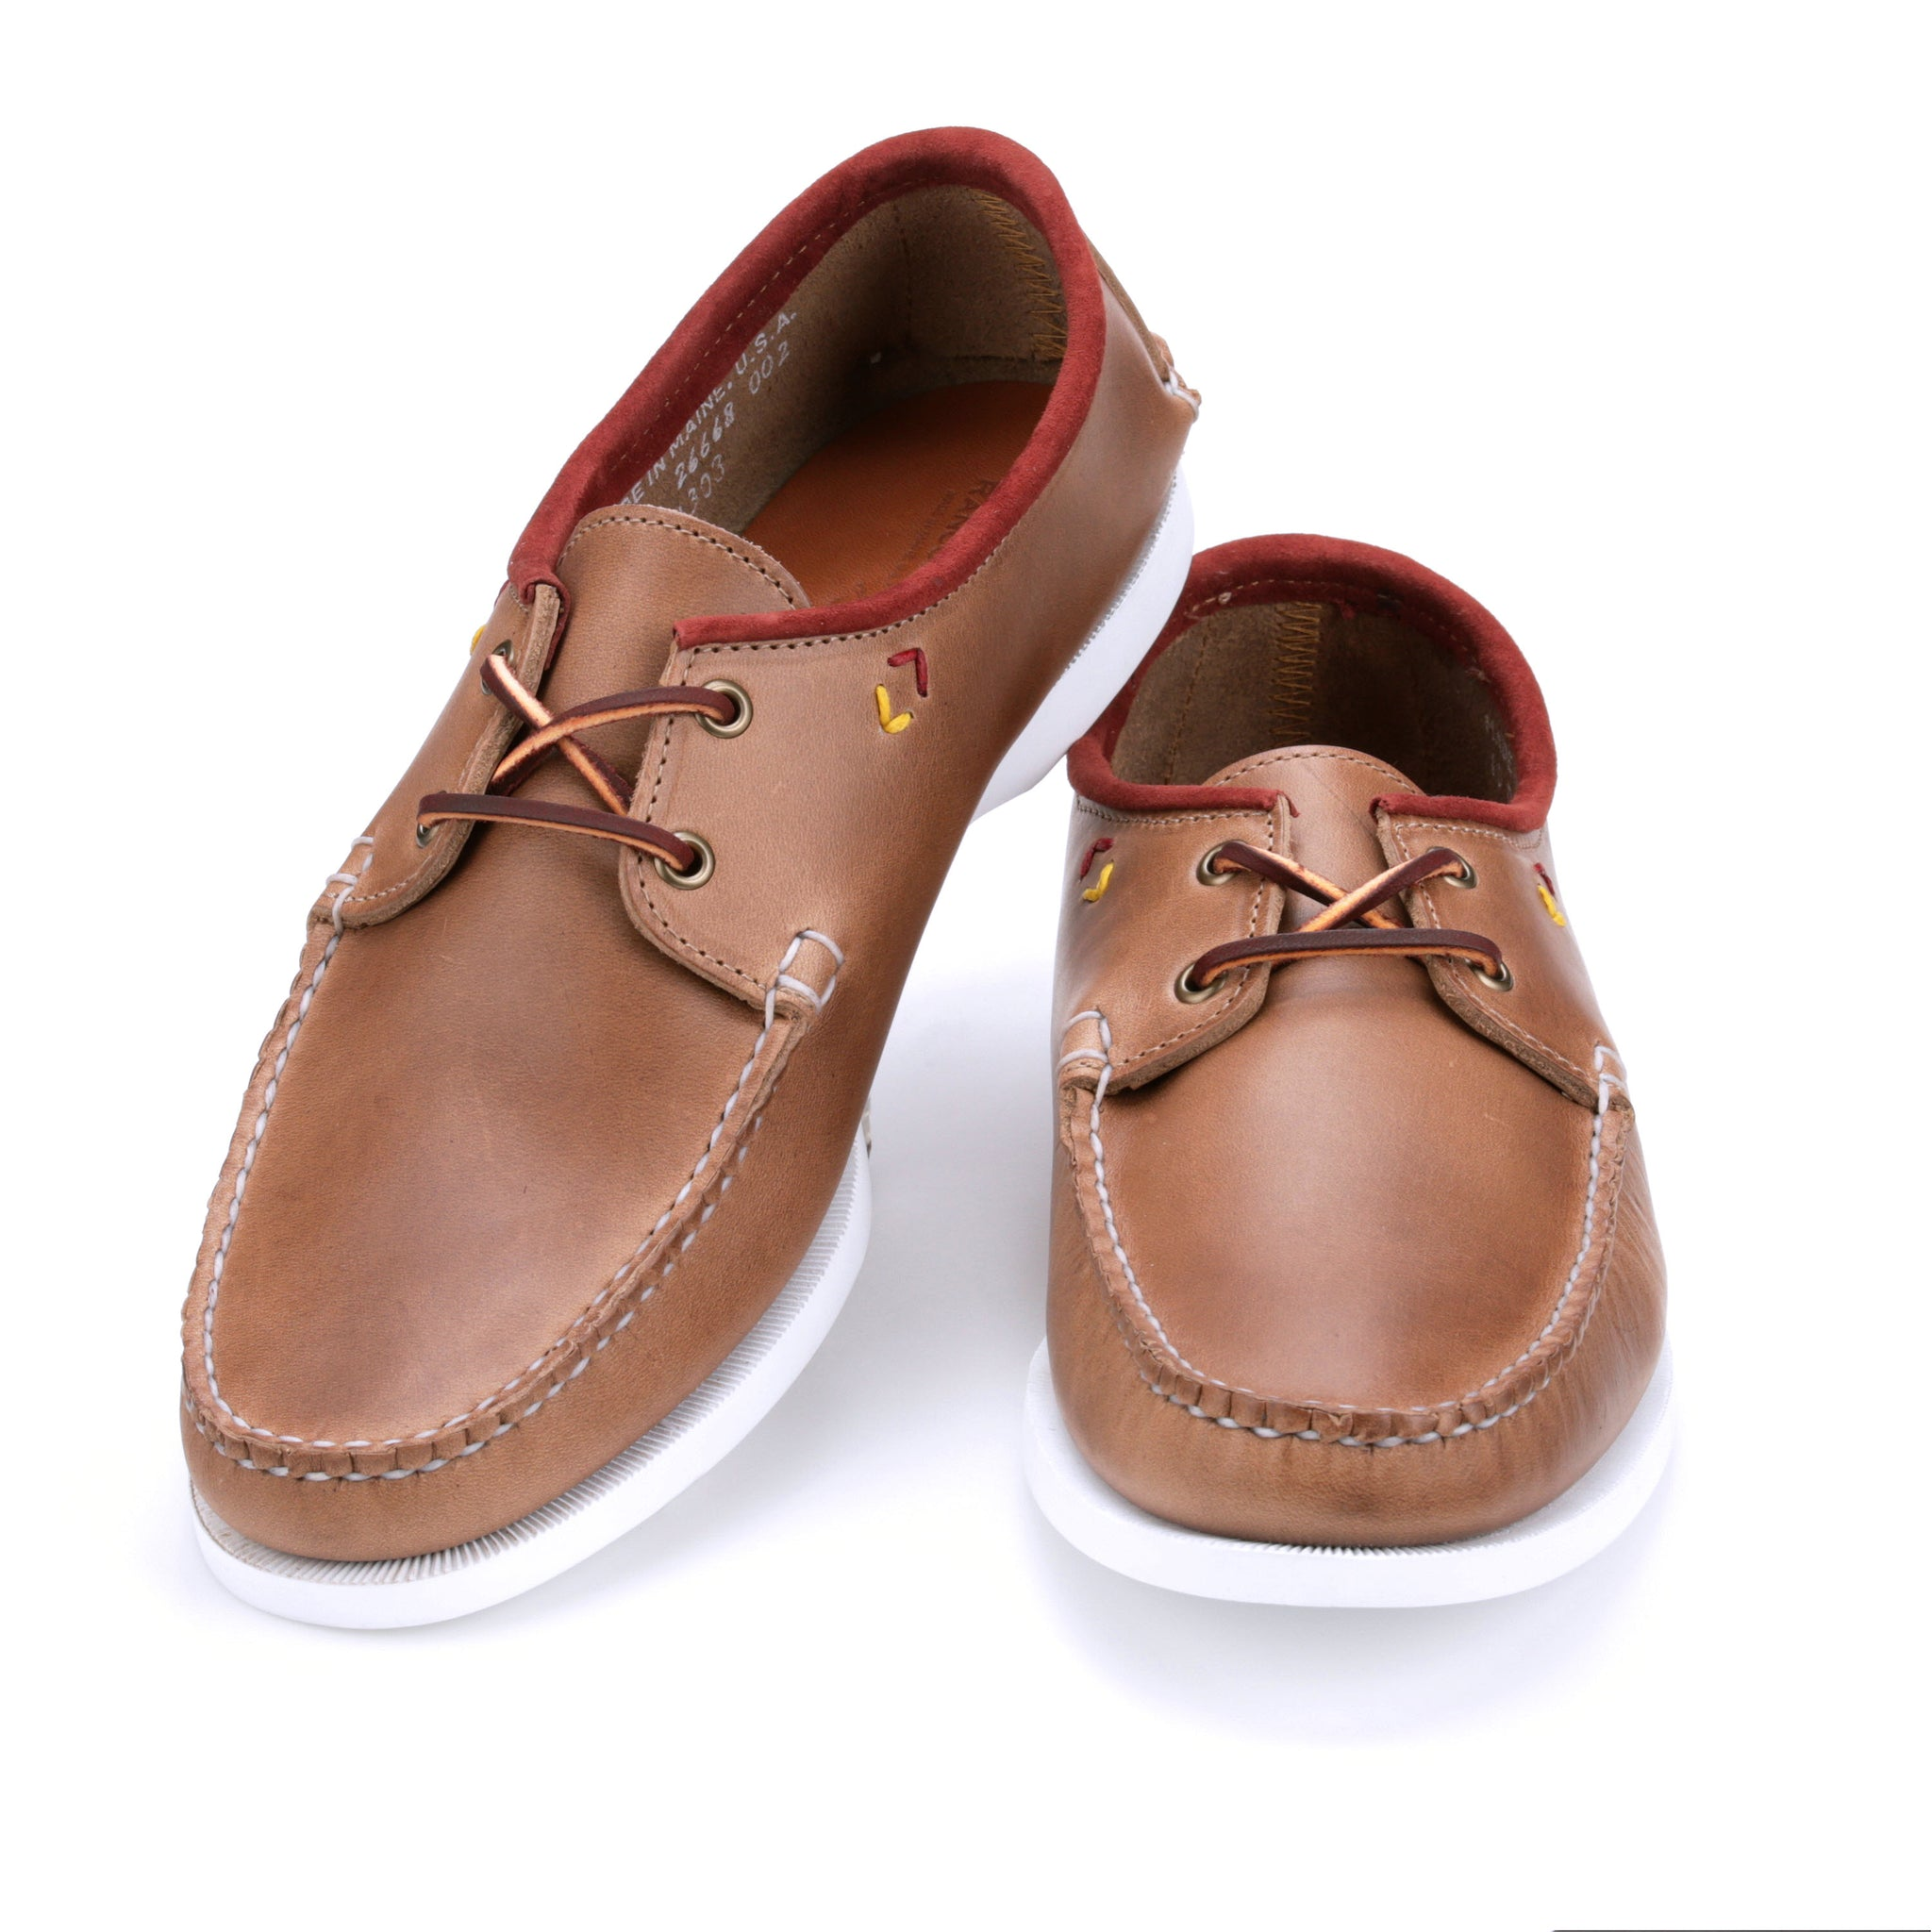 Harbor Boat Shoe - Natural Chromexcel